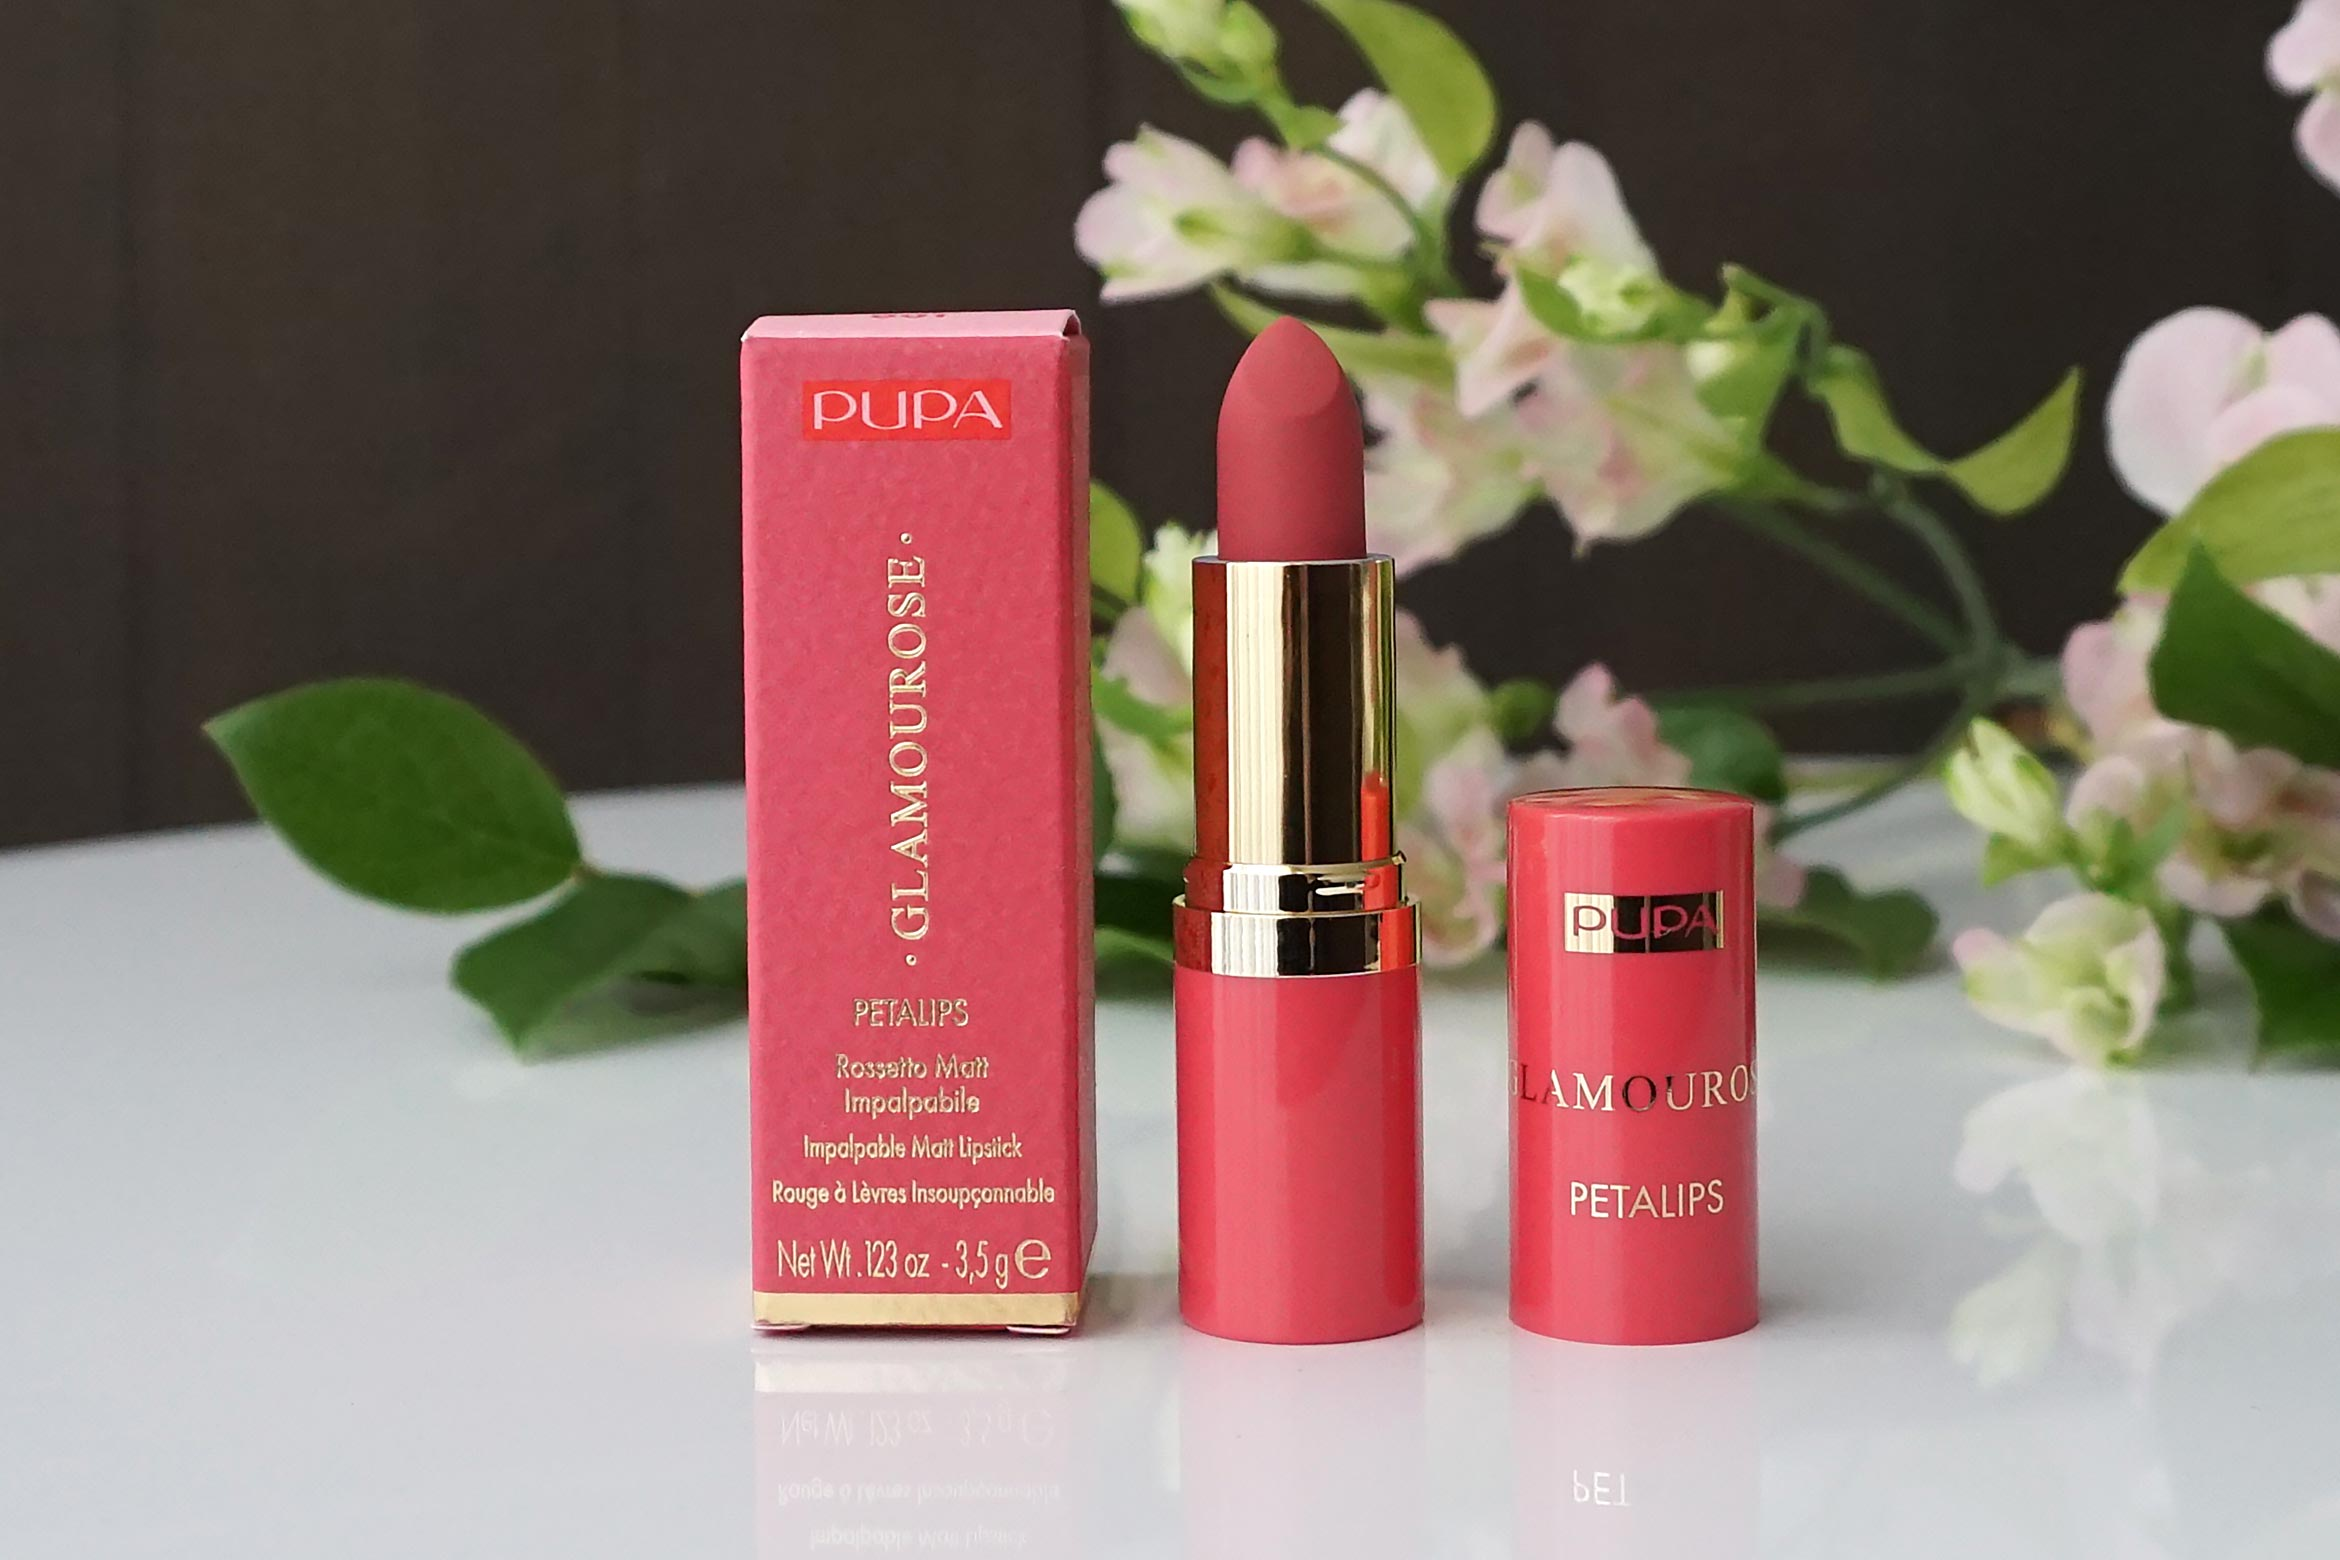 Pupa-Glamourose-Petalips-review